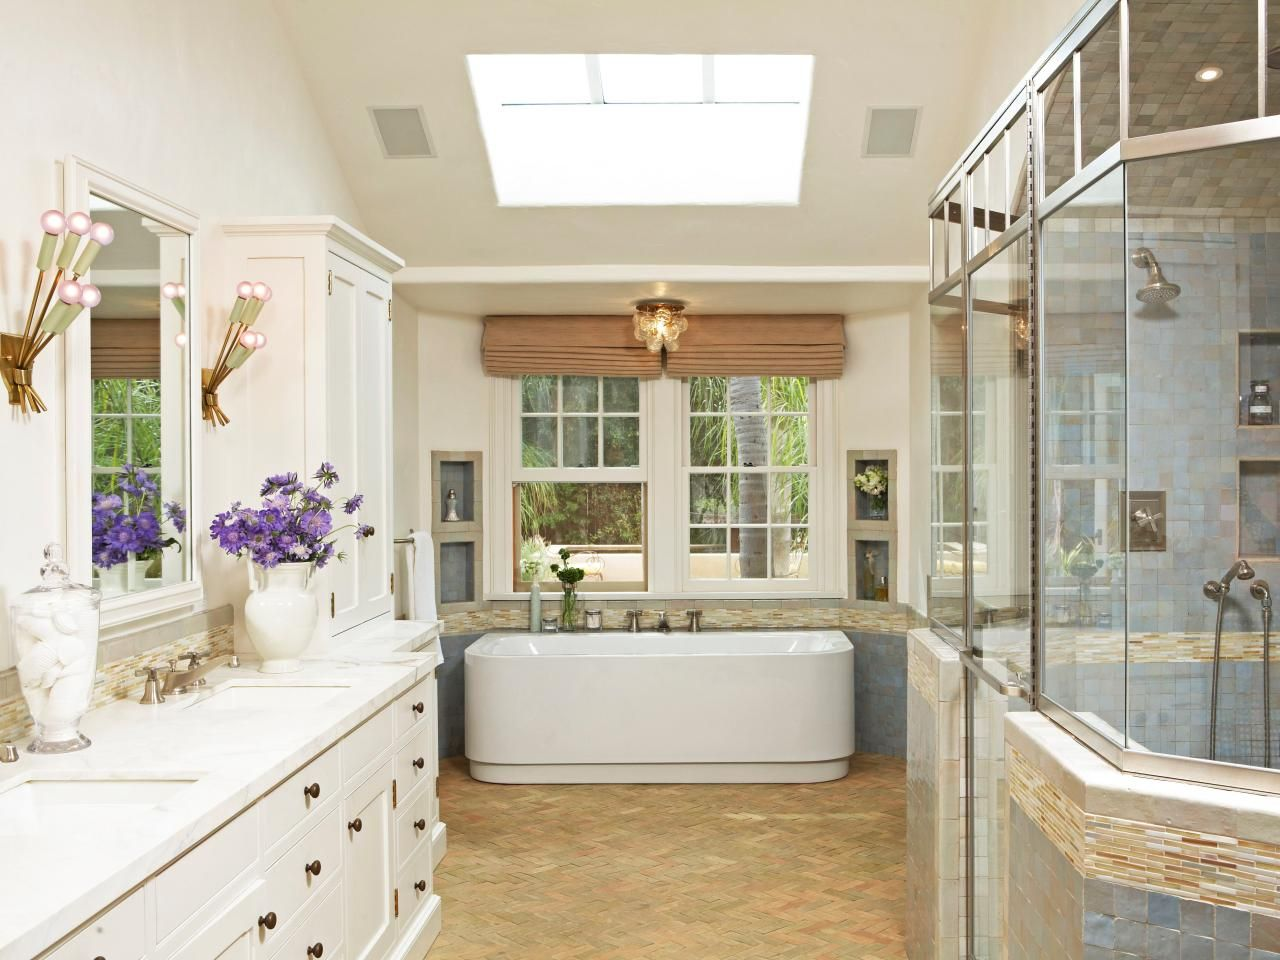 Bathroom Pictures: 99 Stylish Design Ideas You\'ll Love | Radiant ...